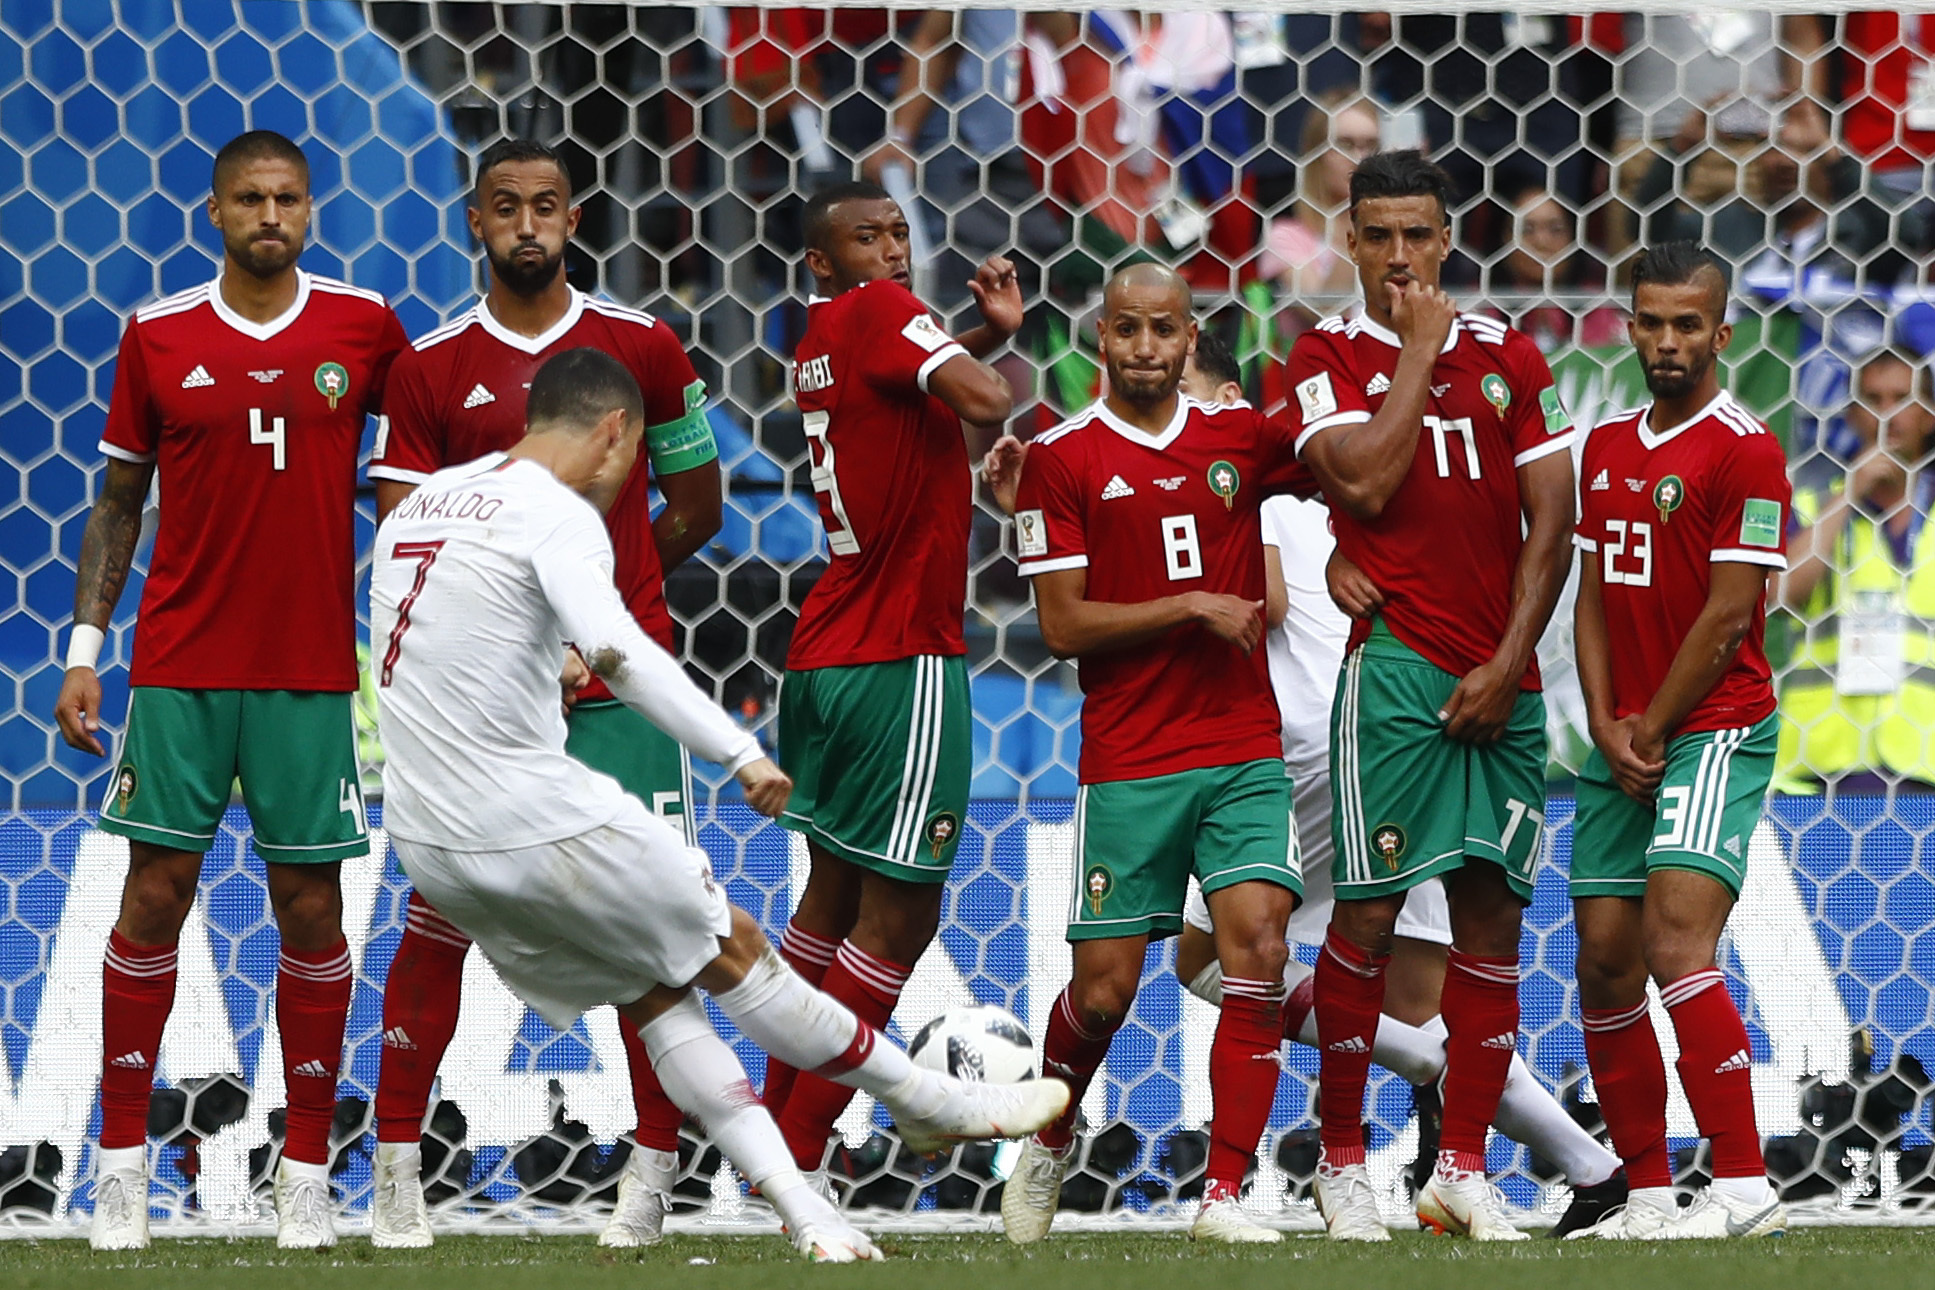 <div class='meta'><div class='origin-logo' data-origin='none'></div><span class='caption-text' data-credit='Matthias Schrader/AP Photo'>Portugal's Cristiano Ronaldo takes a free kick during the group B match between Portugal and Morocco  in the Luzhniki Stadium in Moscow, Russia, Wednesday, June 20, 2018.</span></div>